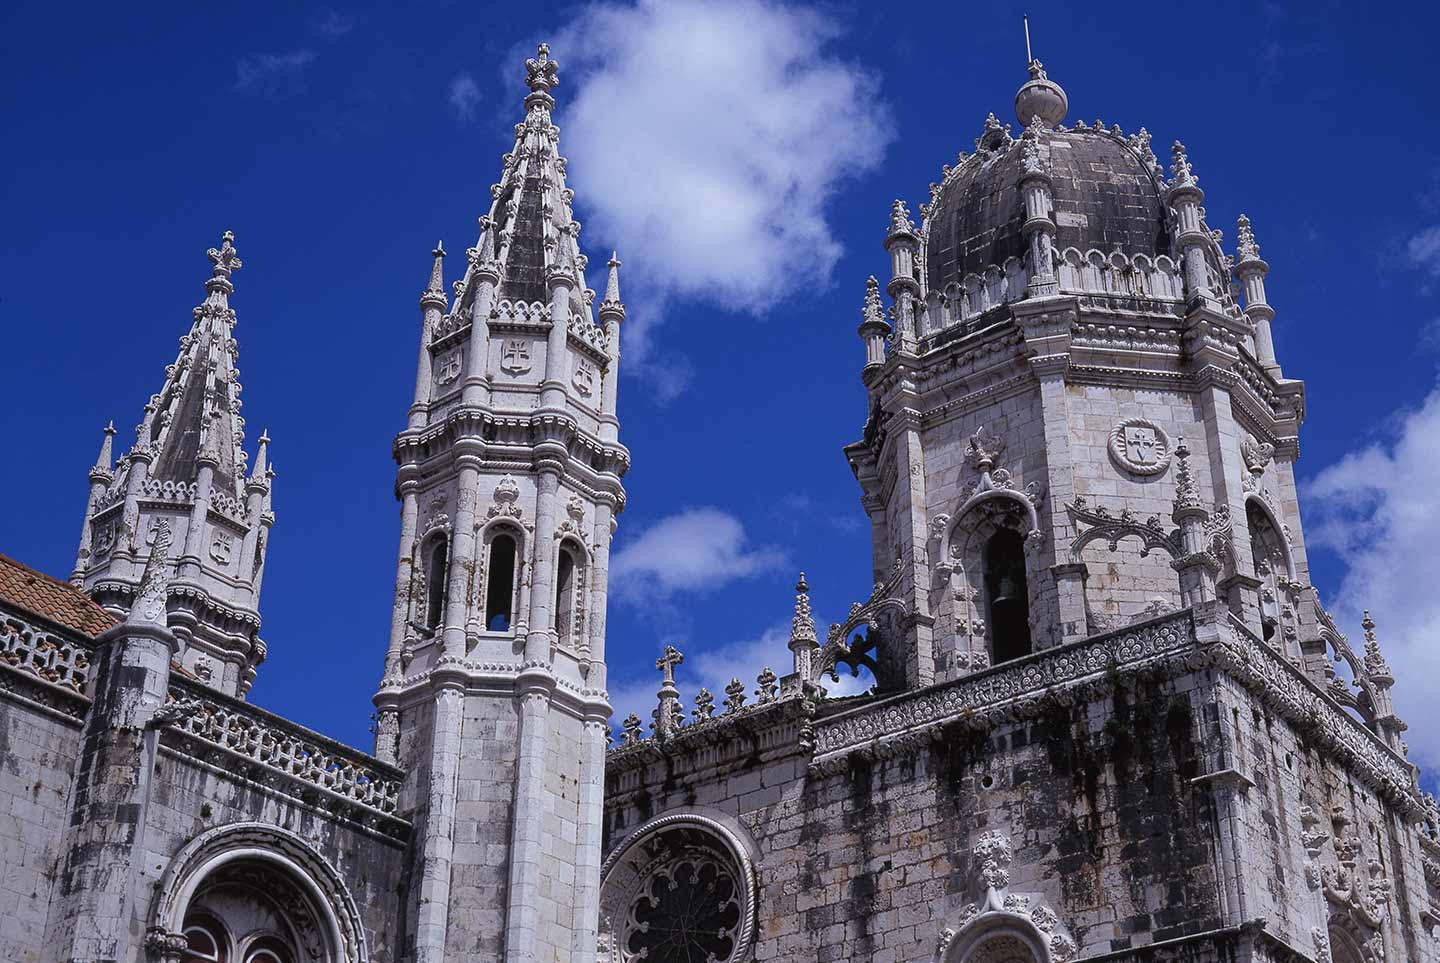 Image of the Mosteiro dos Jeronimos in Belem, Lisbon